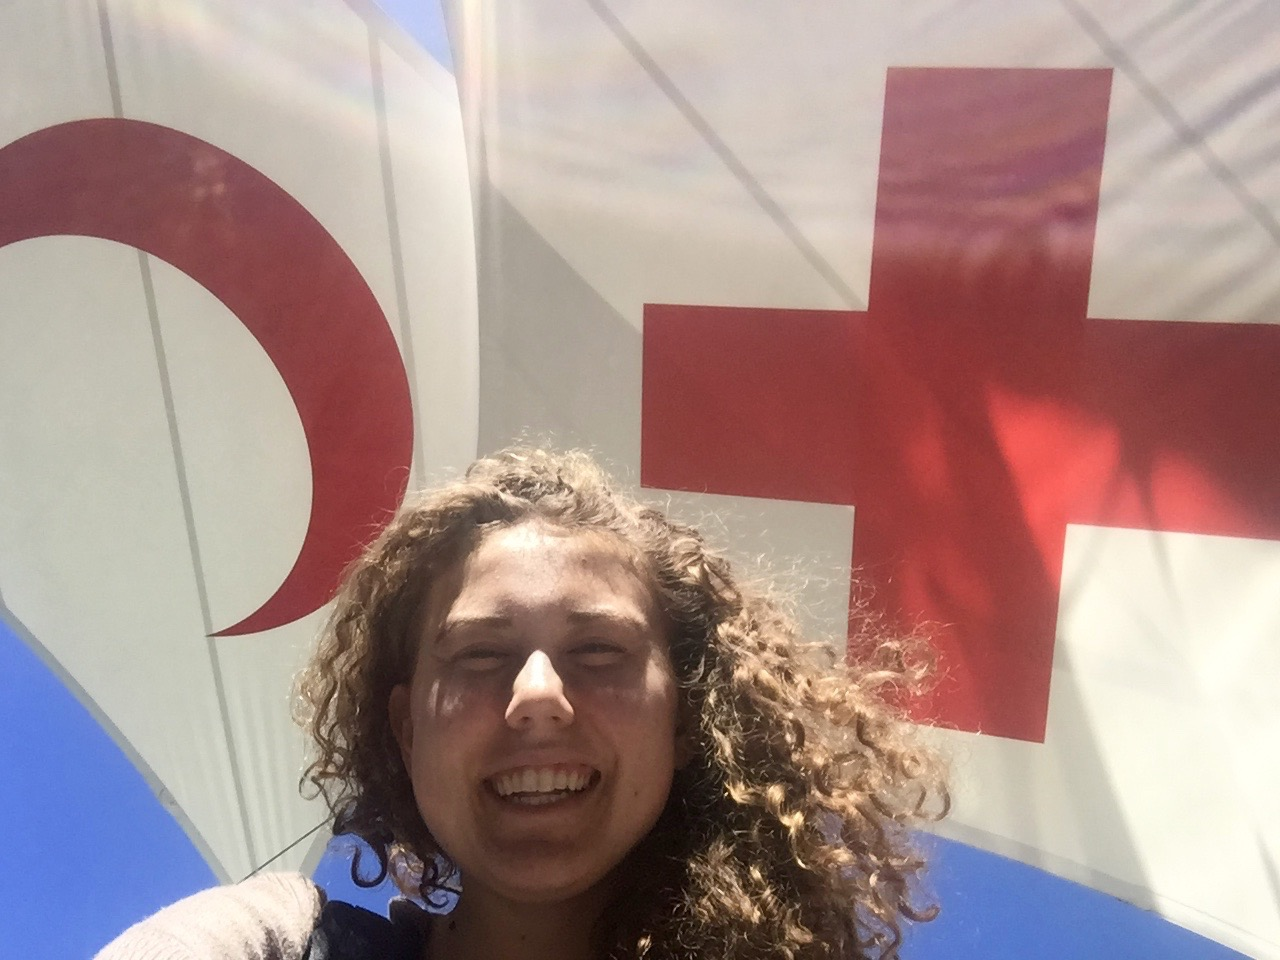 Me at the international Red Cross and Red Crescent museum in Geneva (One of the highlights from my time abroad)